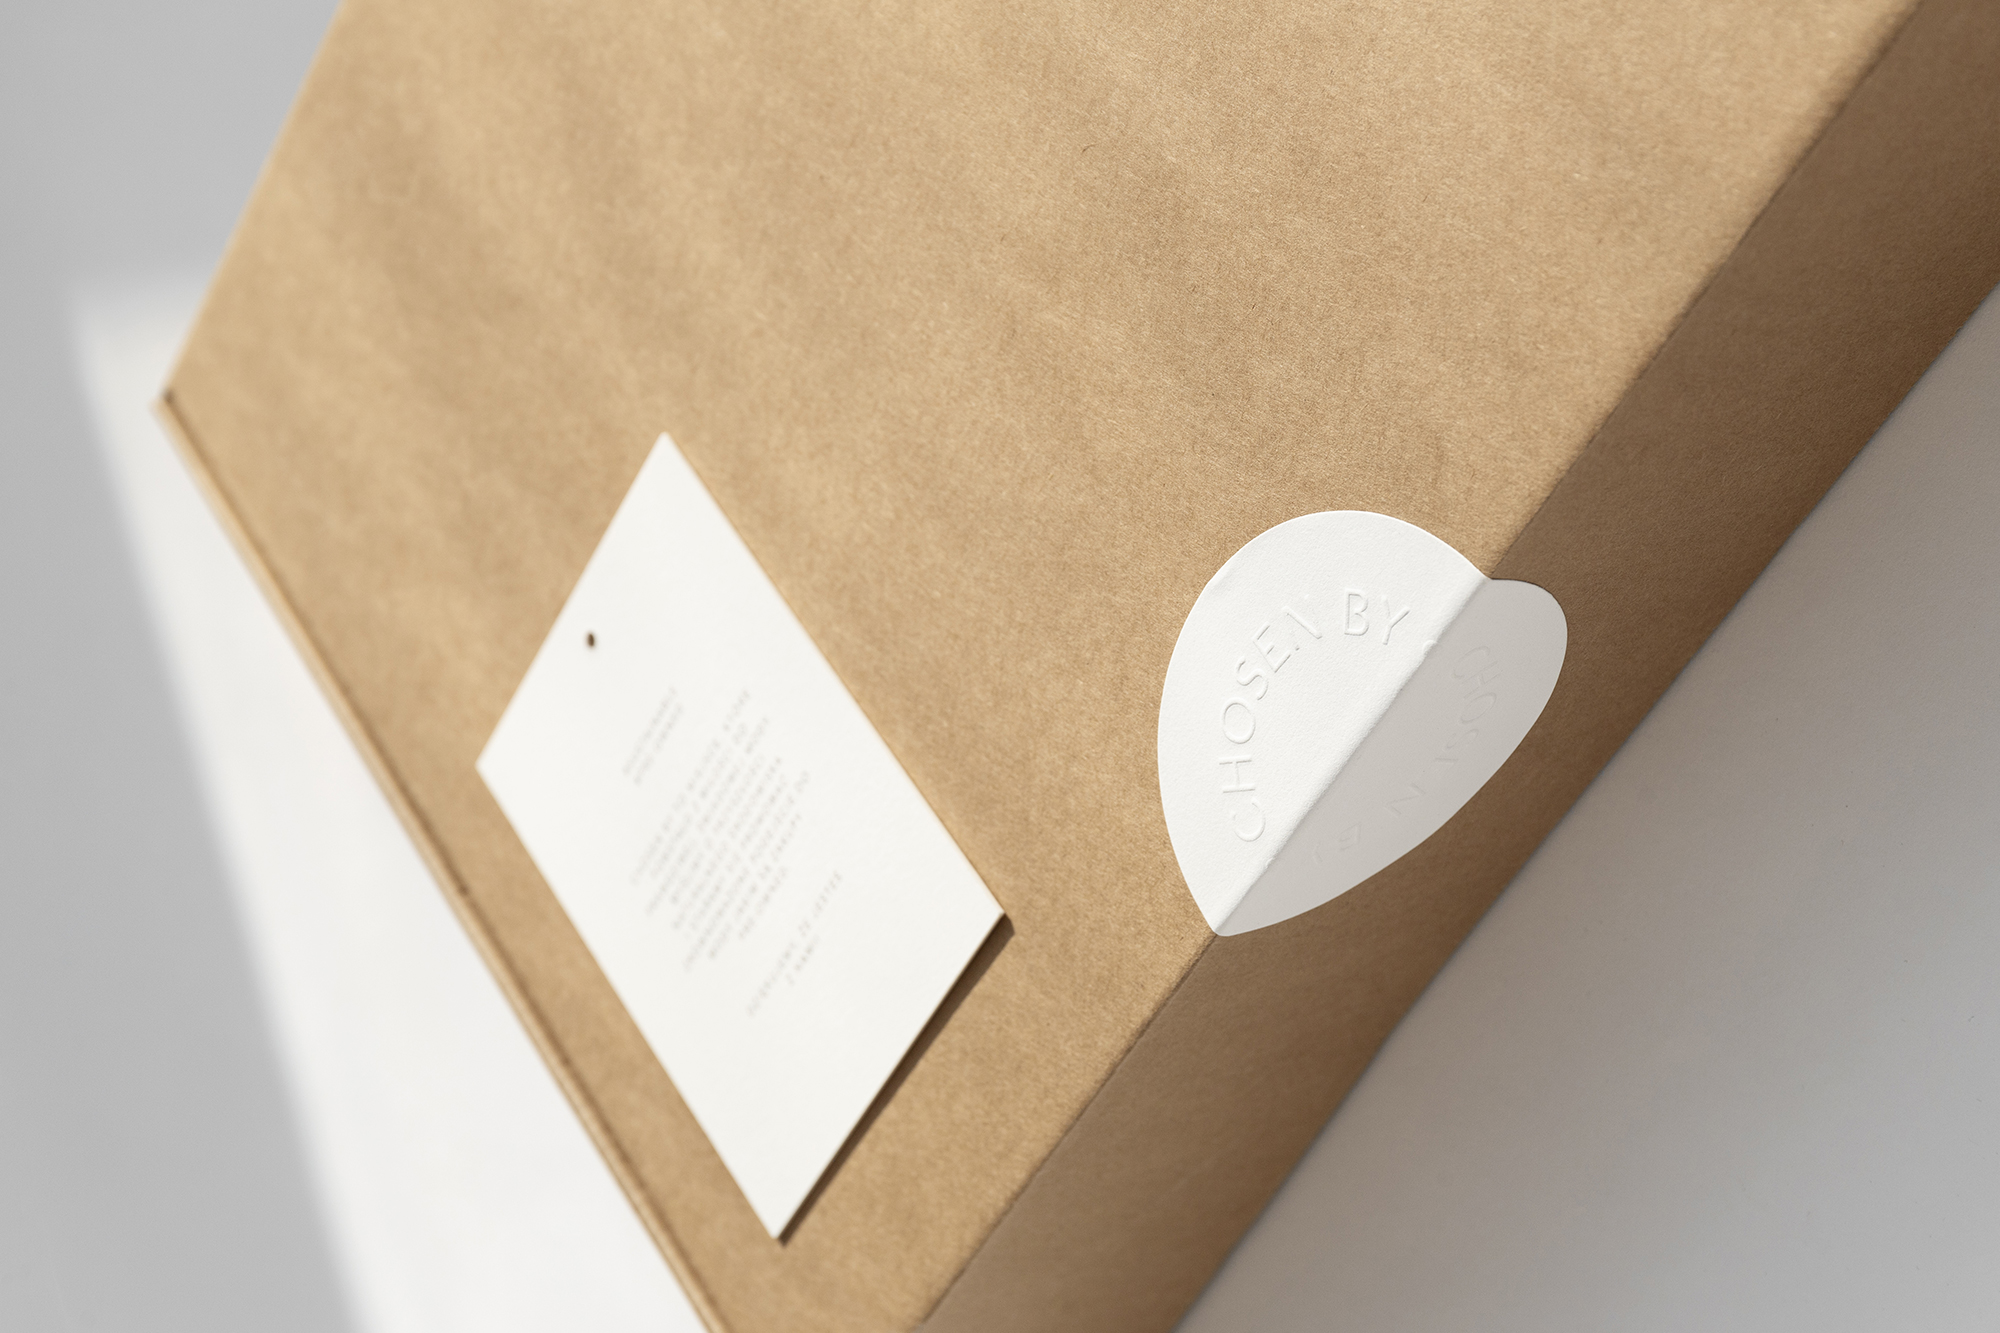 Less Waste Rebranding for Conscious Fashion Label